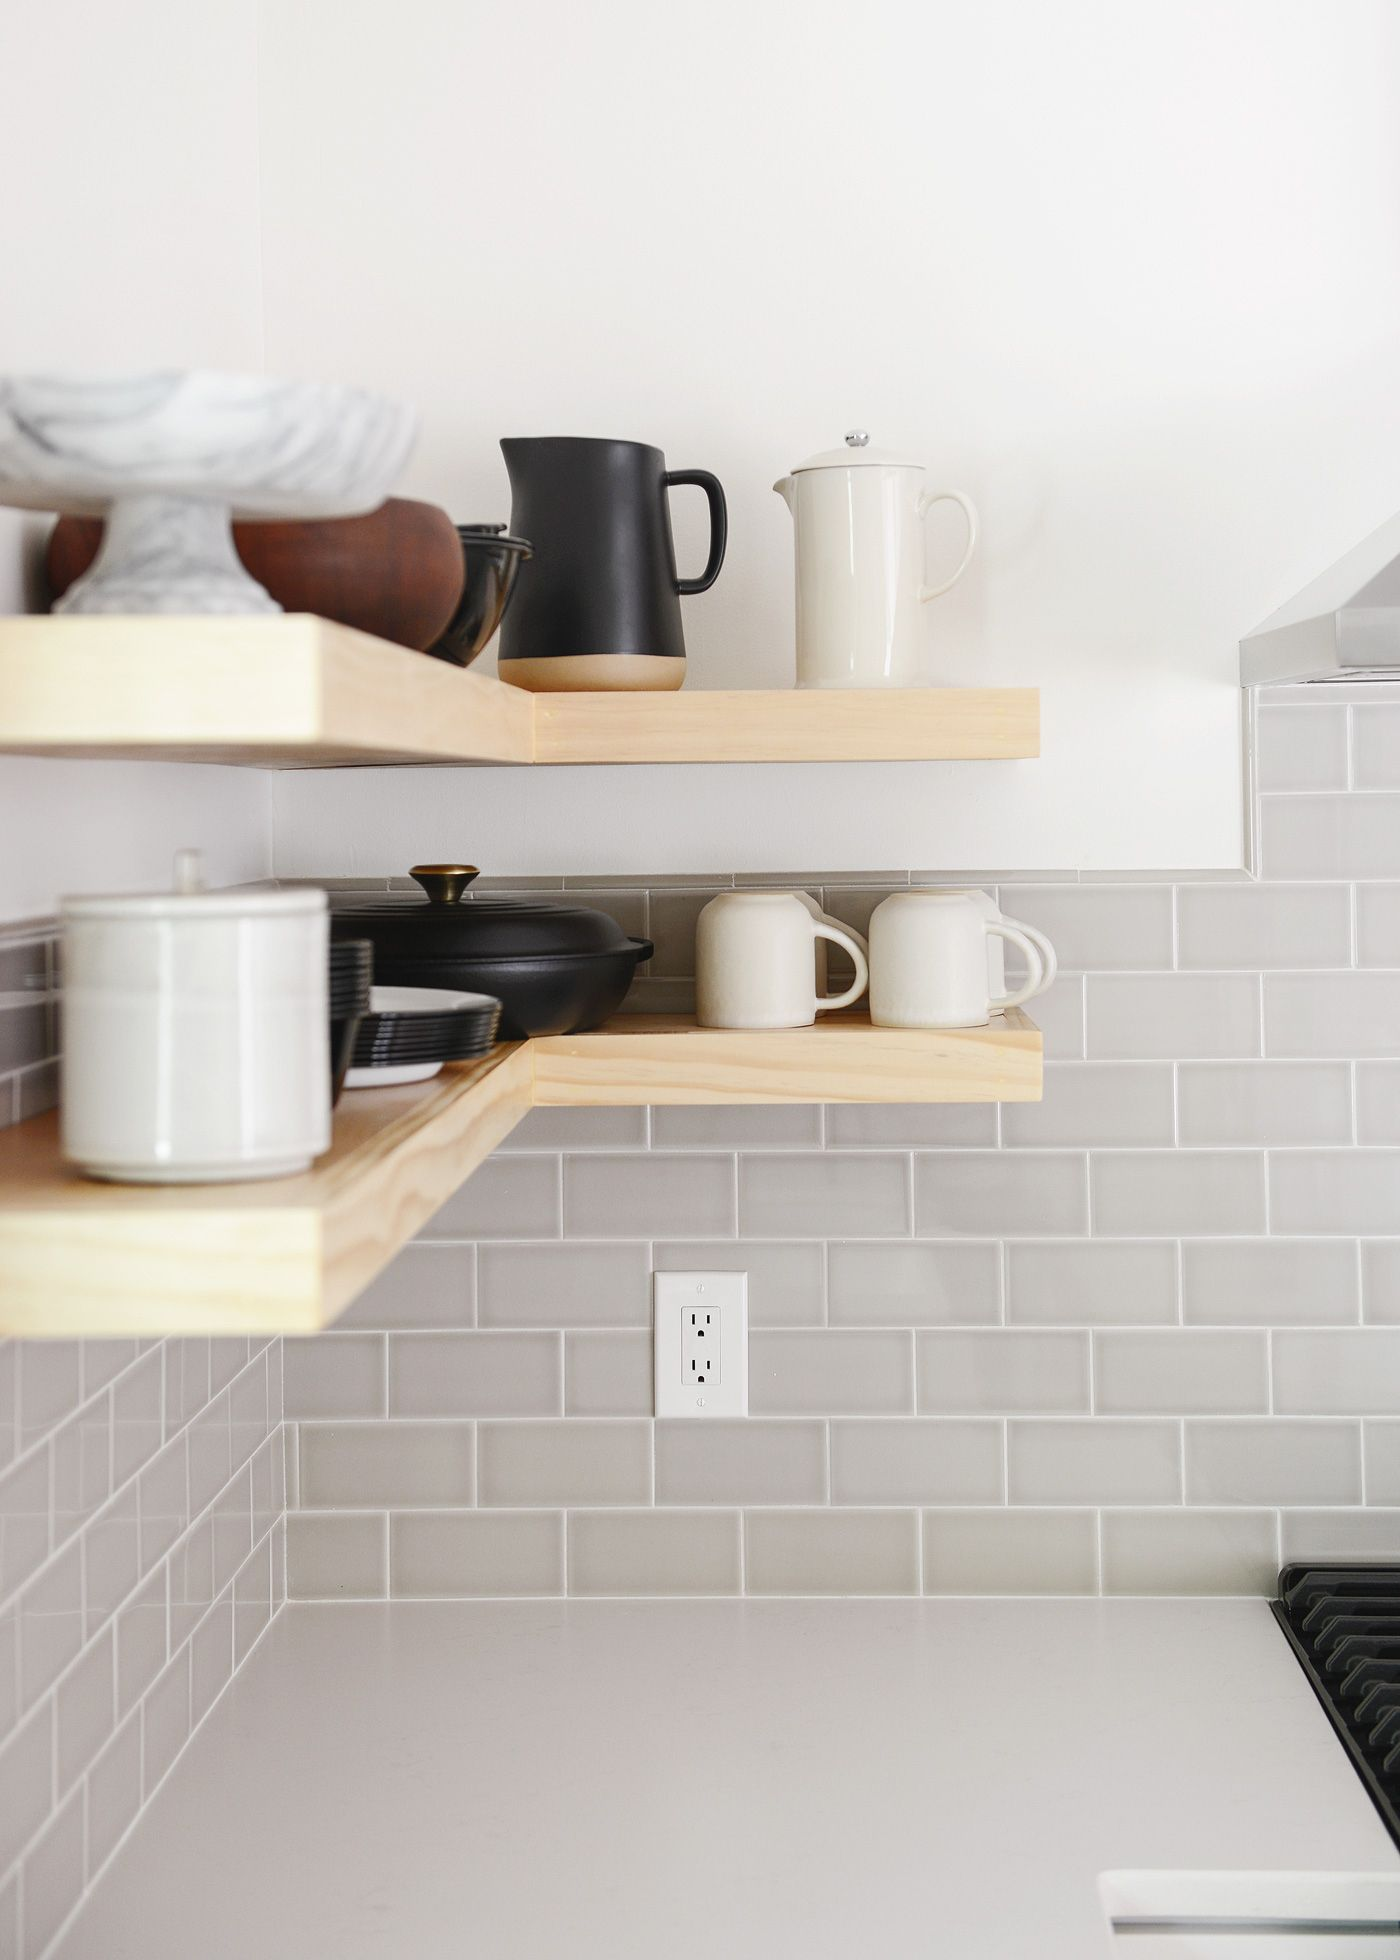 How We Made Thick Floating Shelves A Video Floating Shelves Diy Floating Shelves Diy Floating Shelves Kitchen